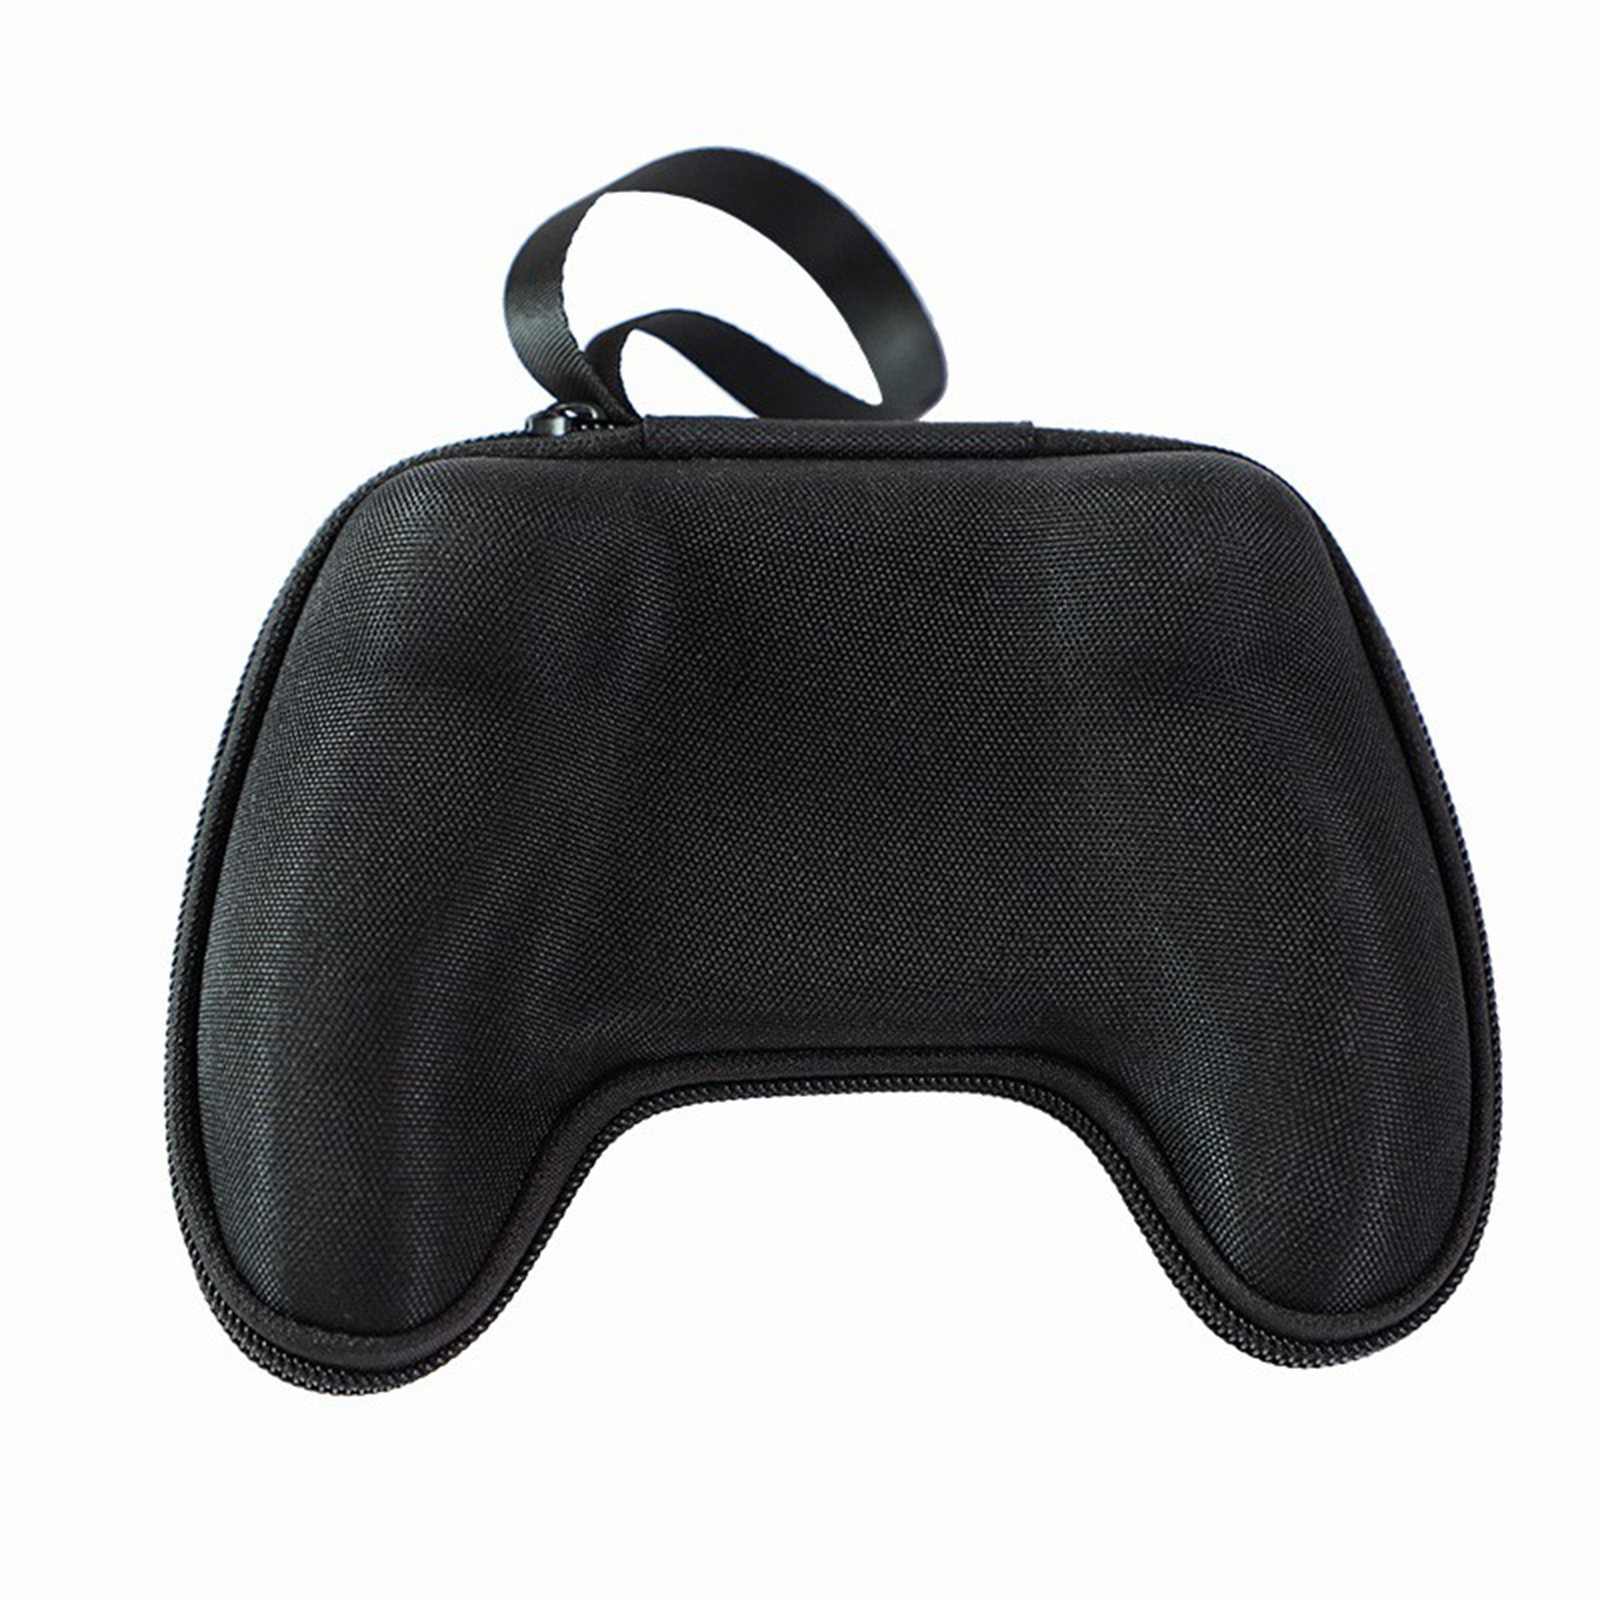 Storage Bag Protective Case Carrying Bag for PS5 Controller